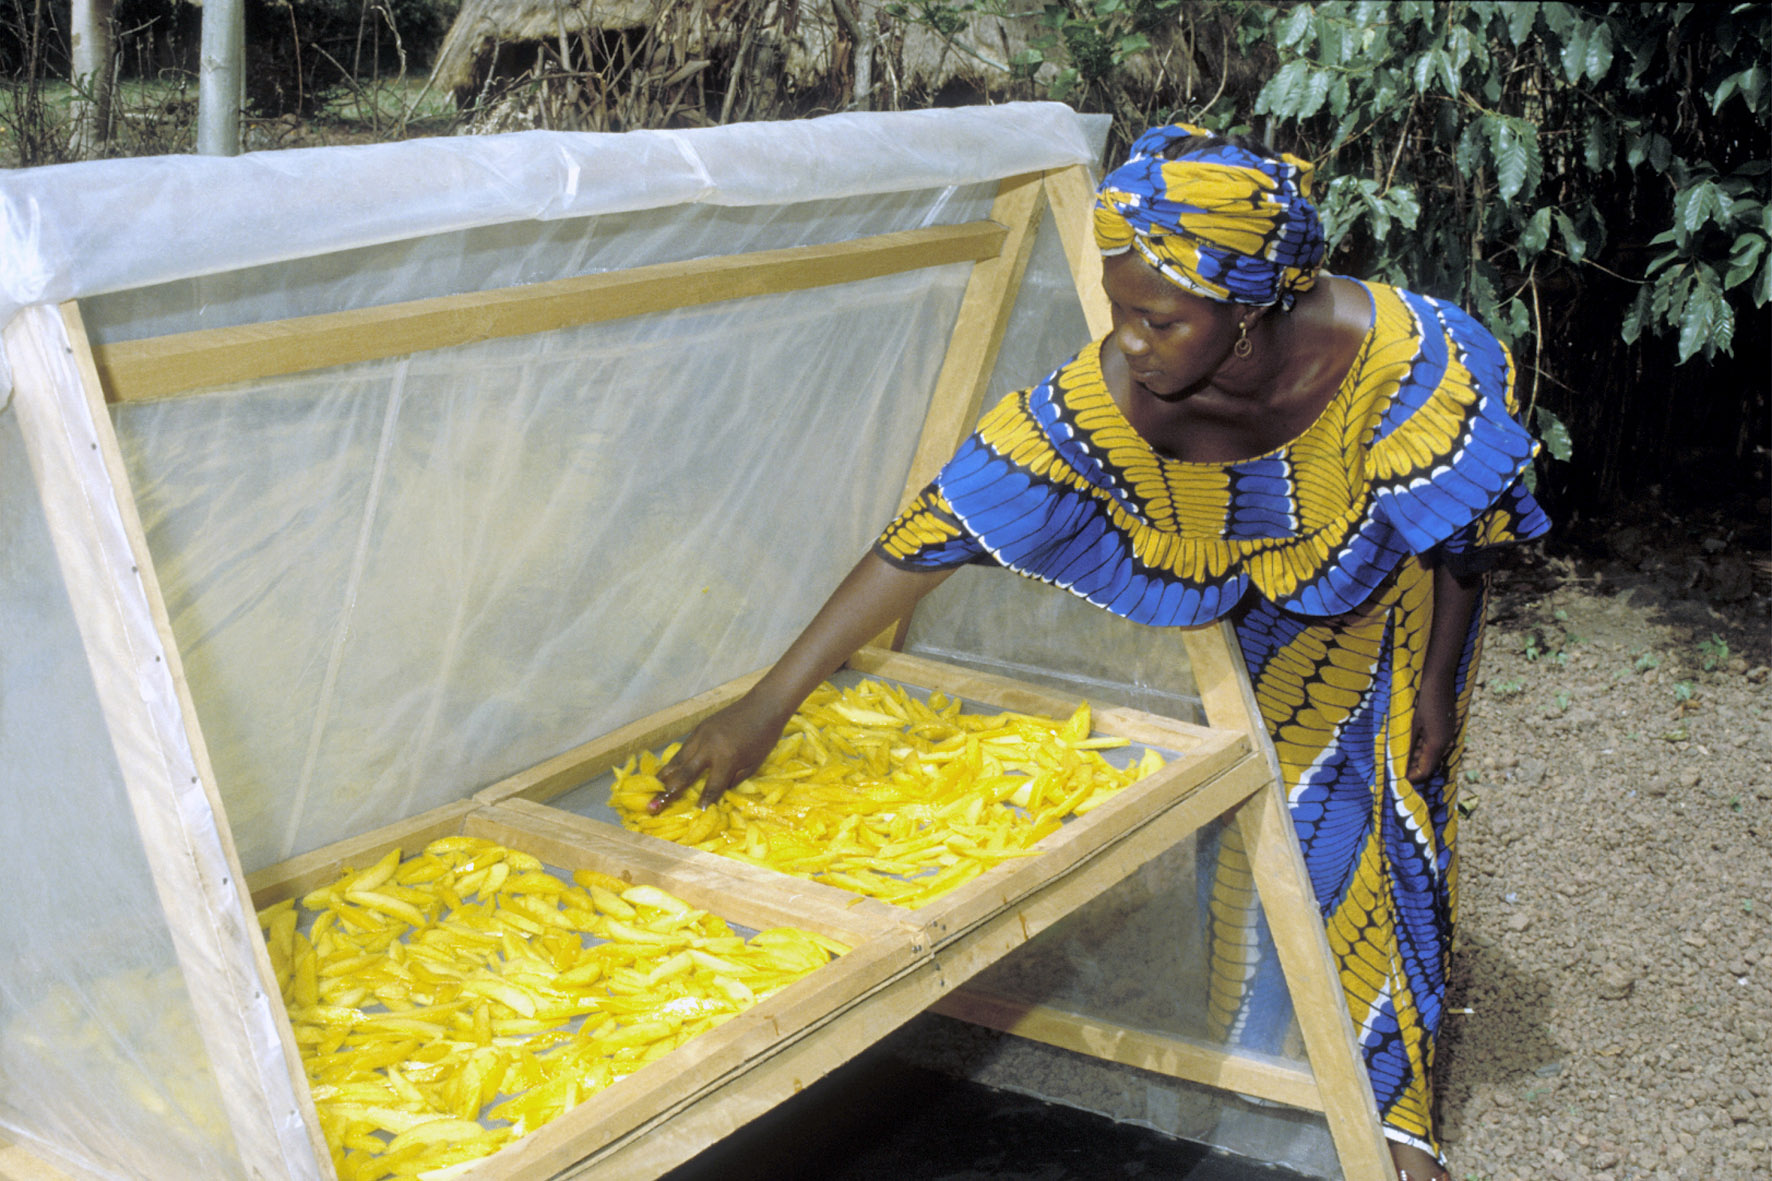 Food losses increase during COVID-19, a major hurdle to Africa's development